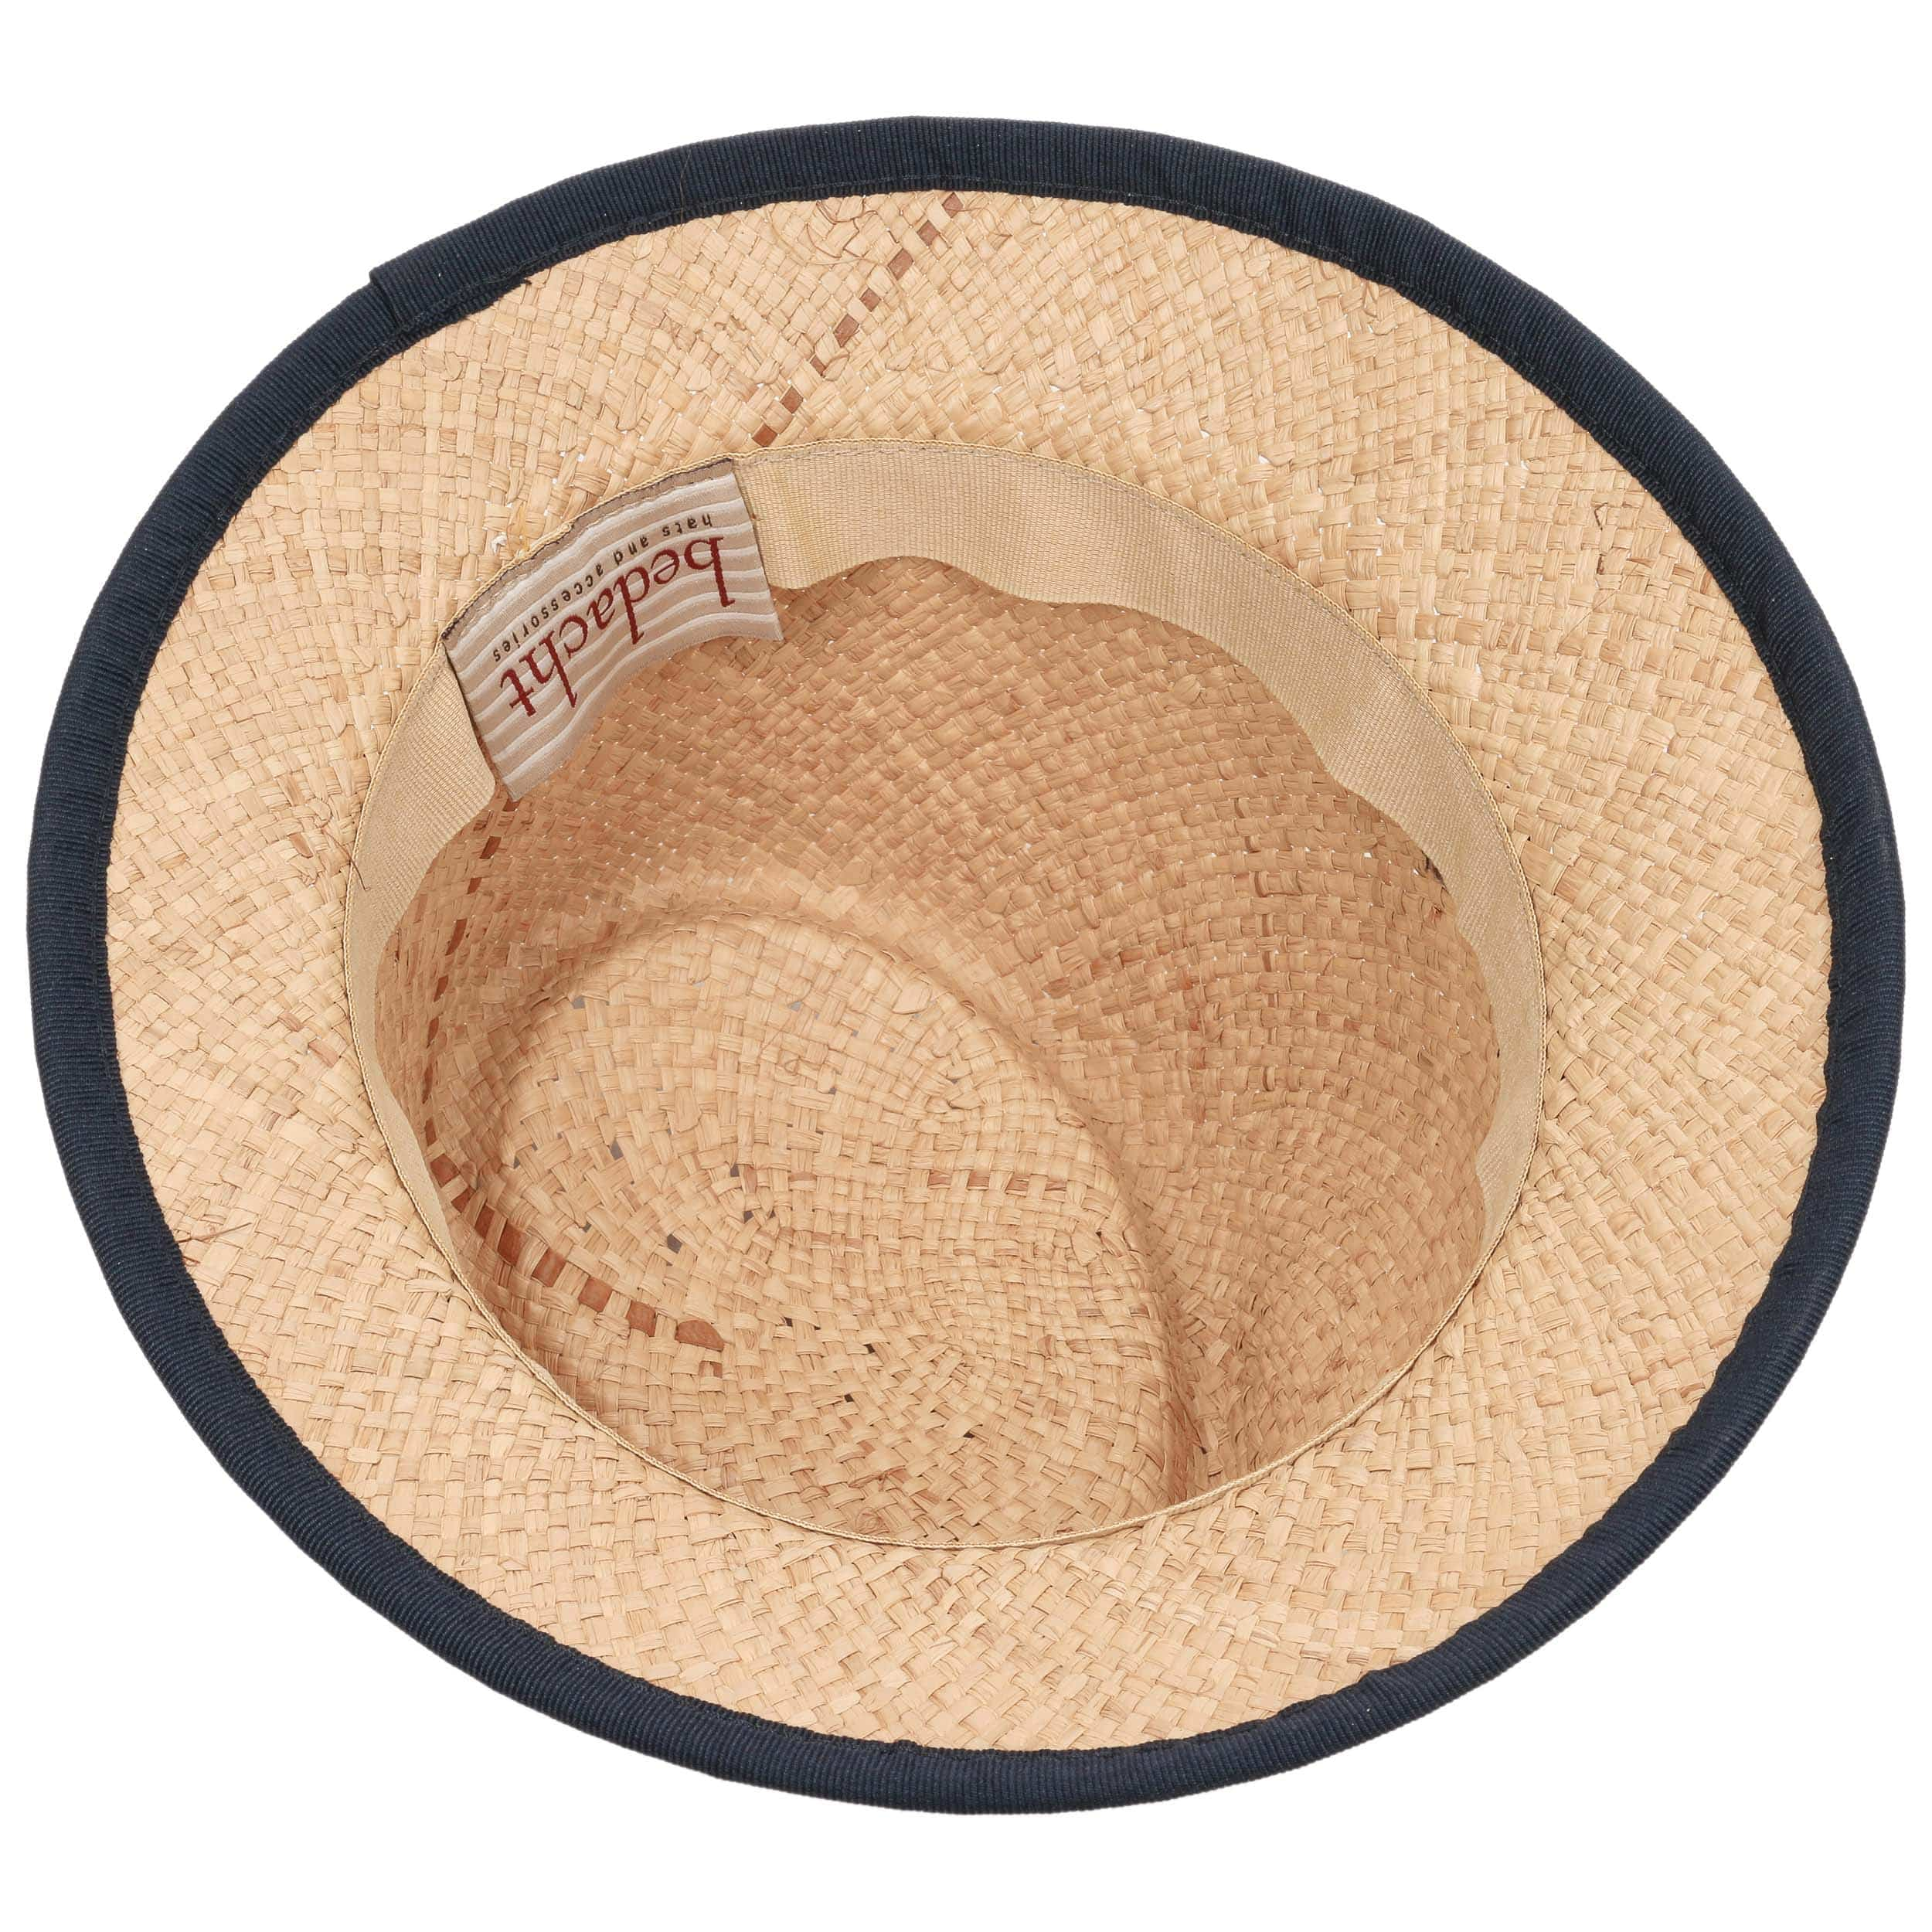 5c18c25d0a1 ... Caleja Women´s Raffia Straw Hat by bedacht - nature-red 2 ...